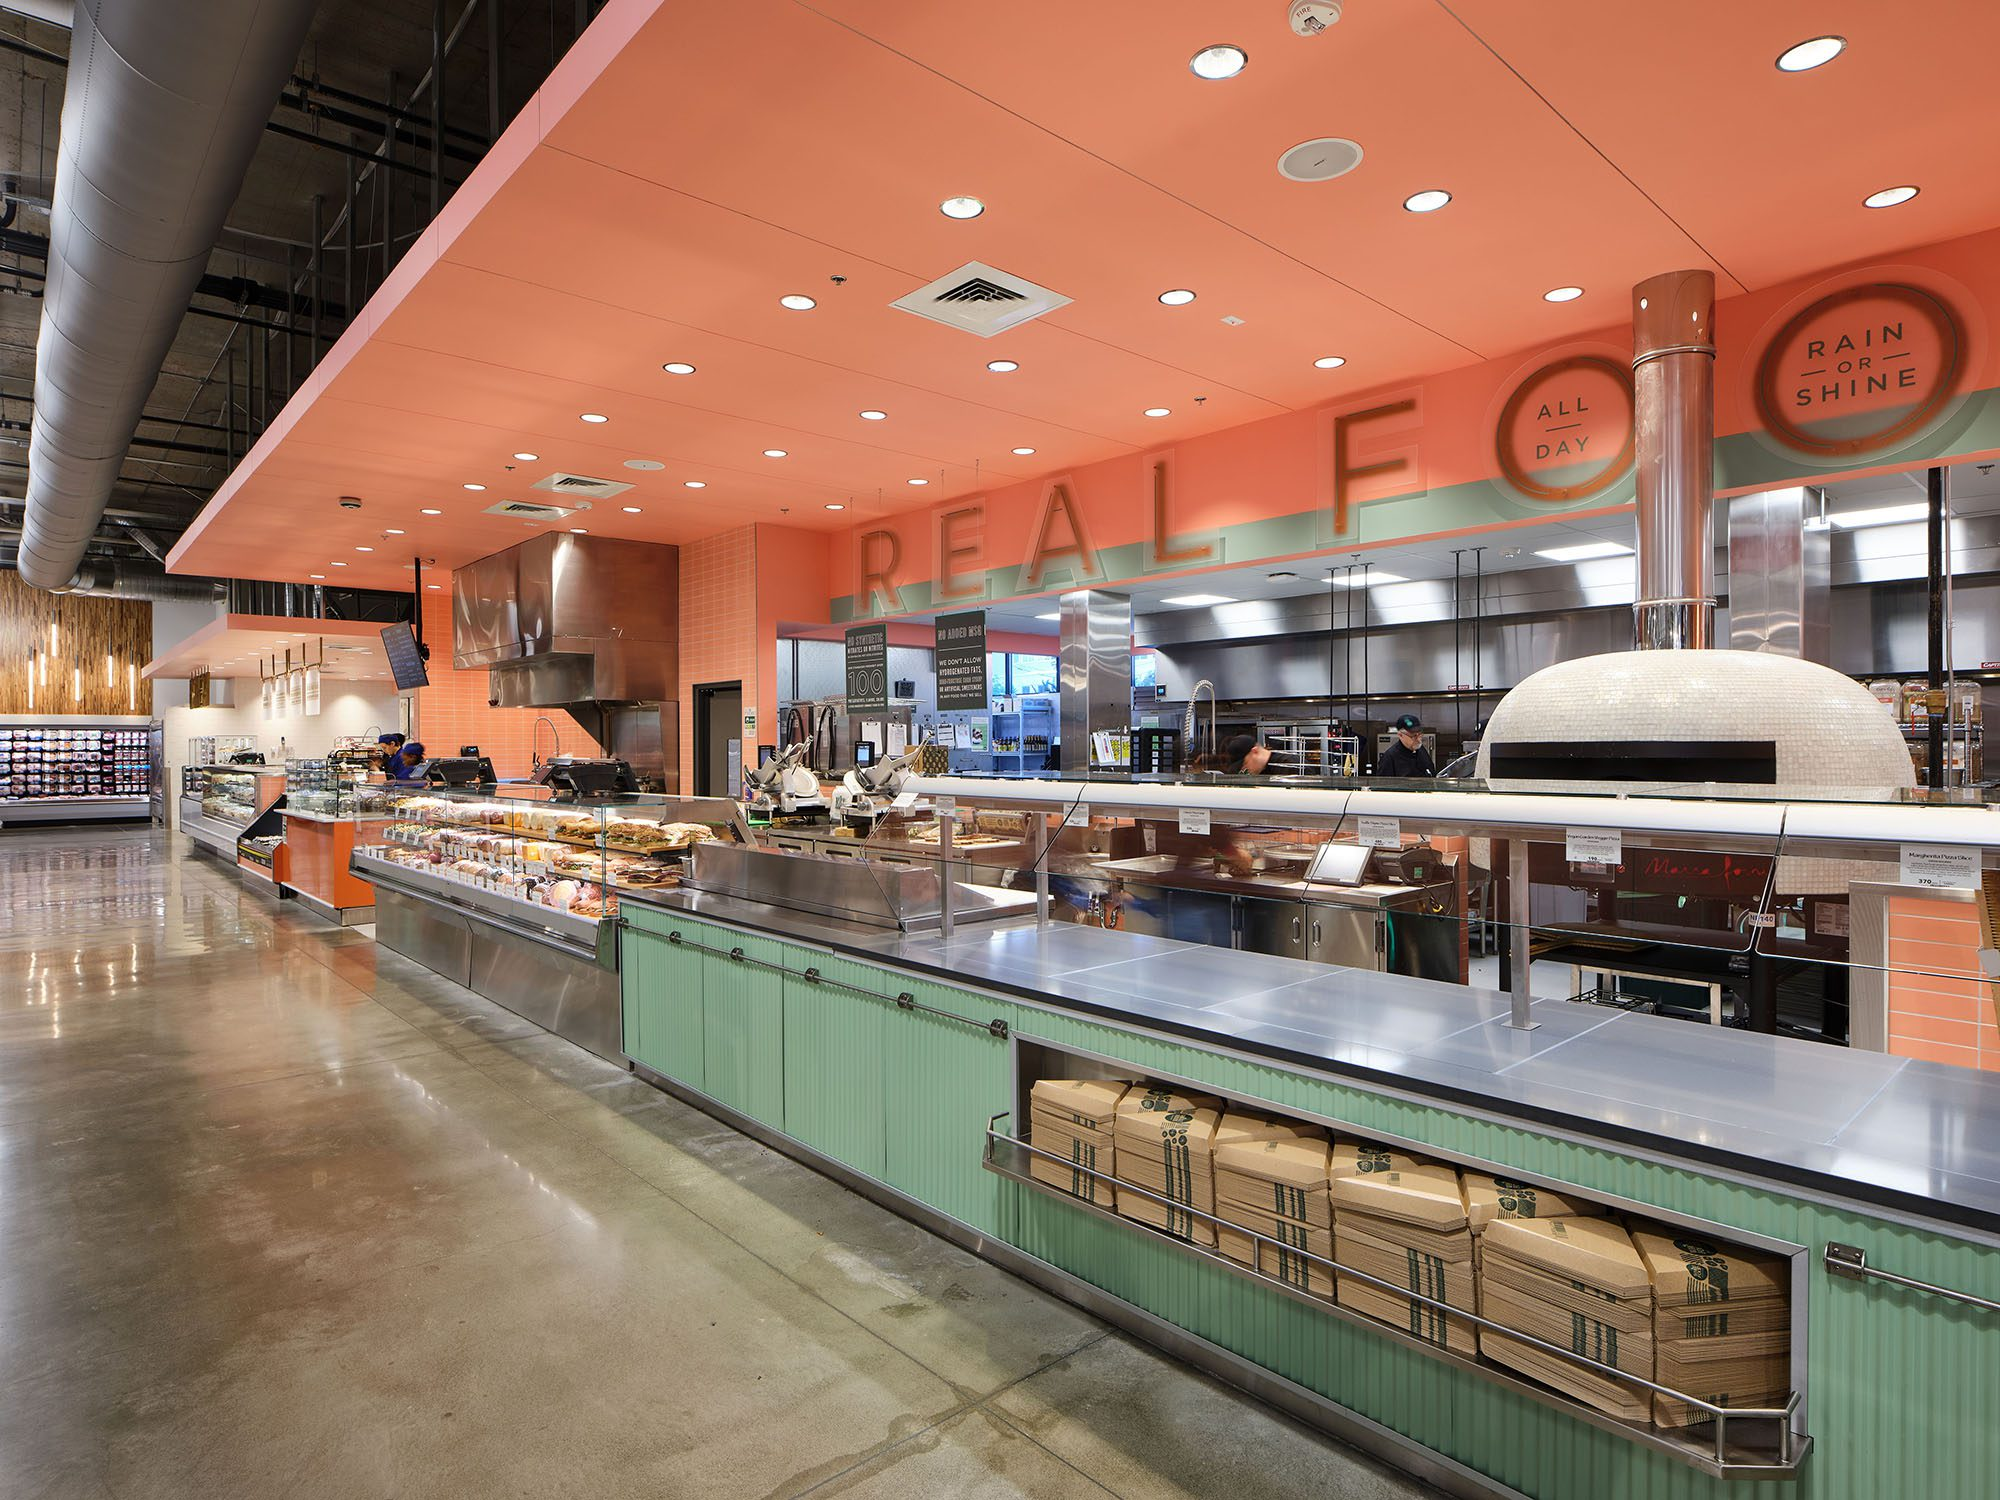 Whole Foods Market, Seattle | 2019 Design Award Winner